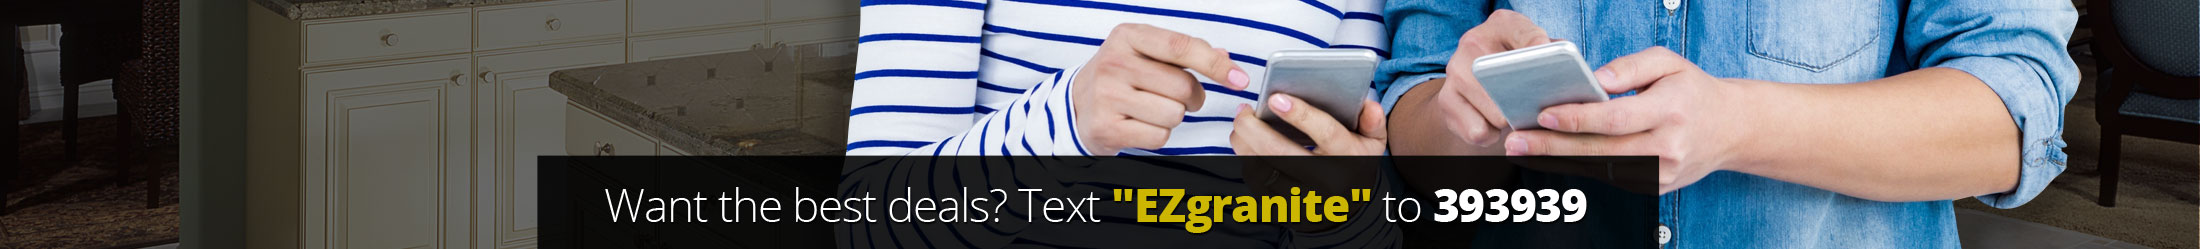 swgg-banner-texting-sm